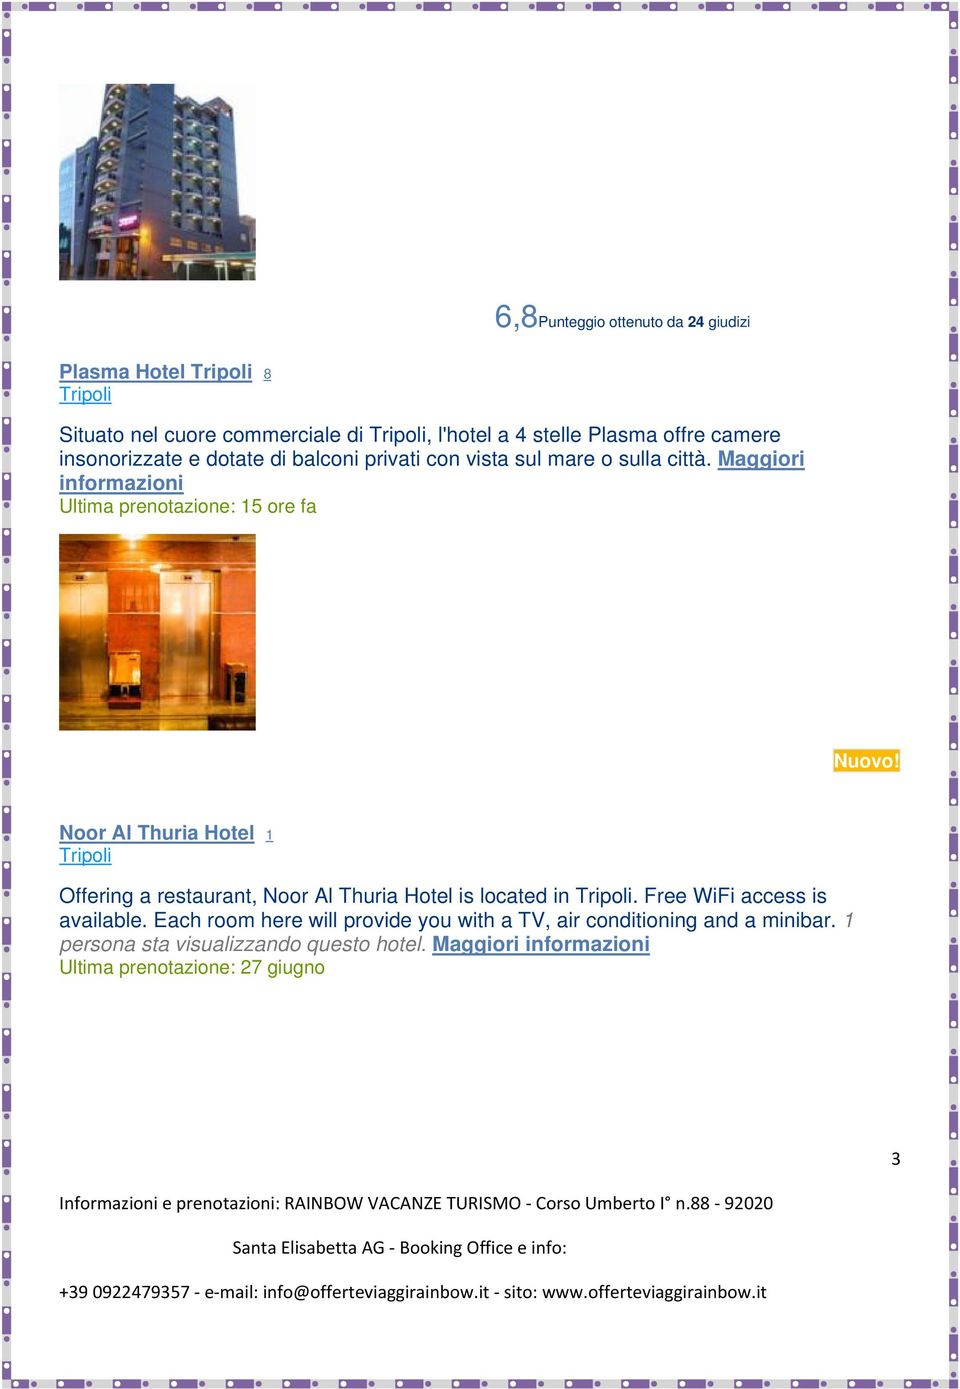 Noor Al Thuria Hotel 1 Offering a restaurant, Noor Al Thuria Hotel is located in. Free WiFi access is available.